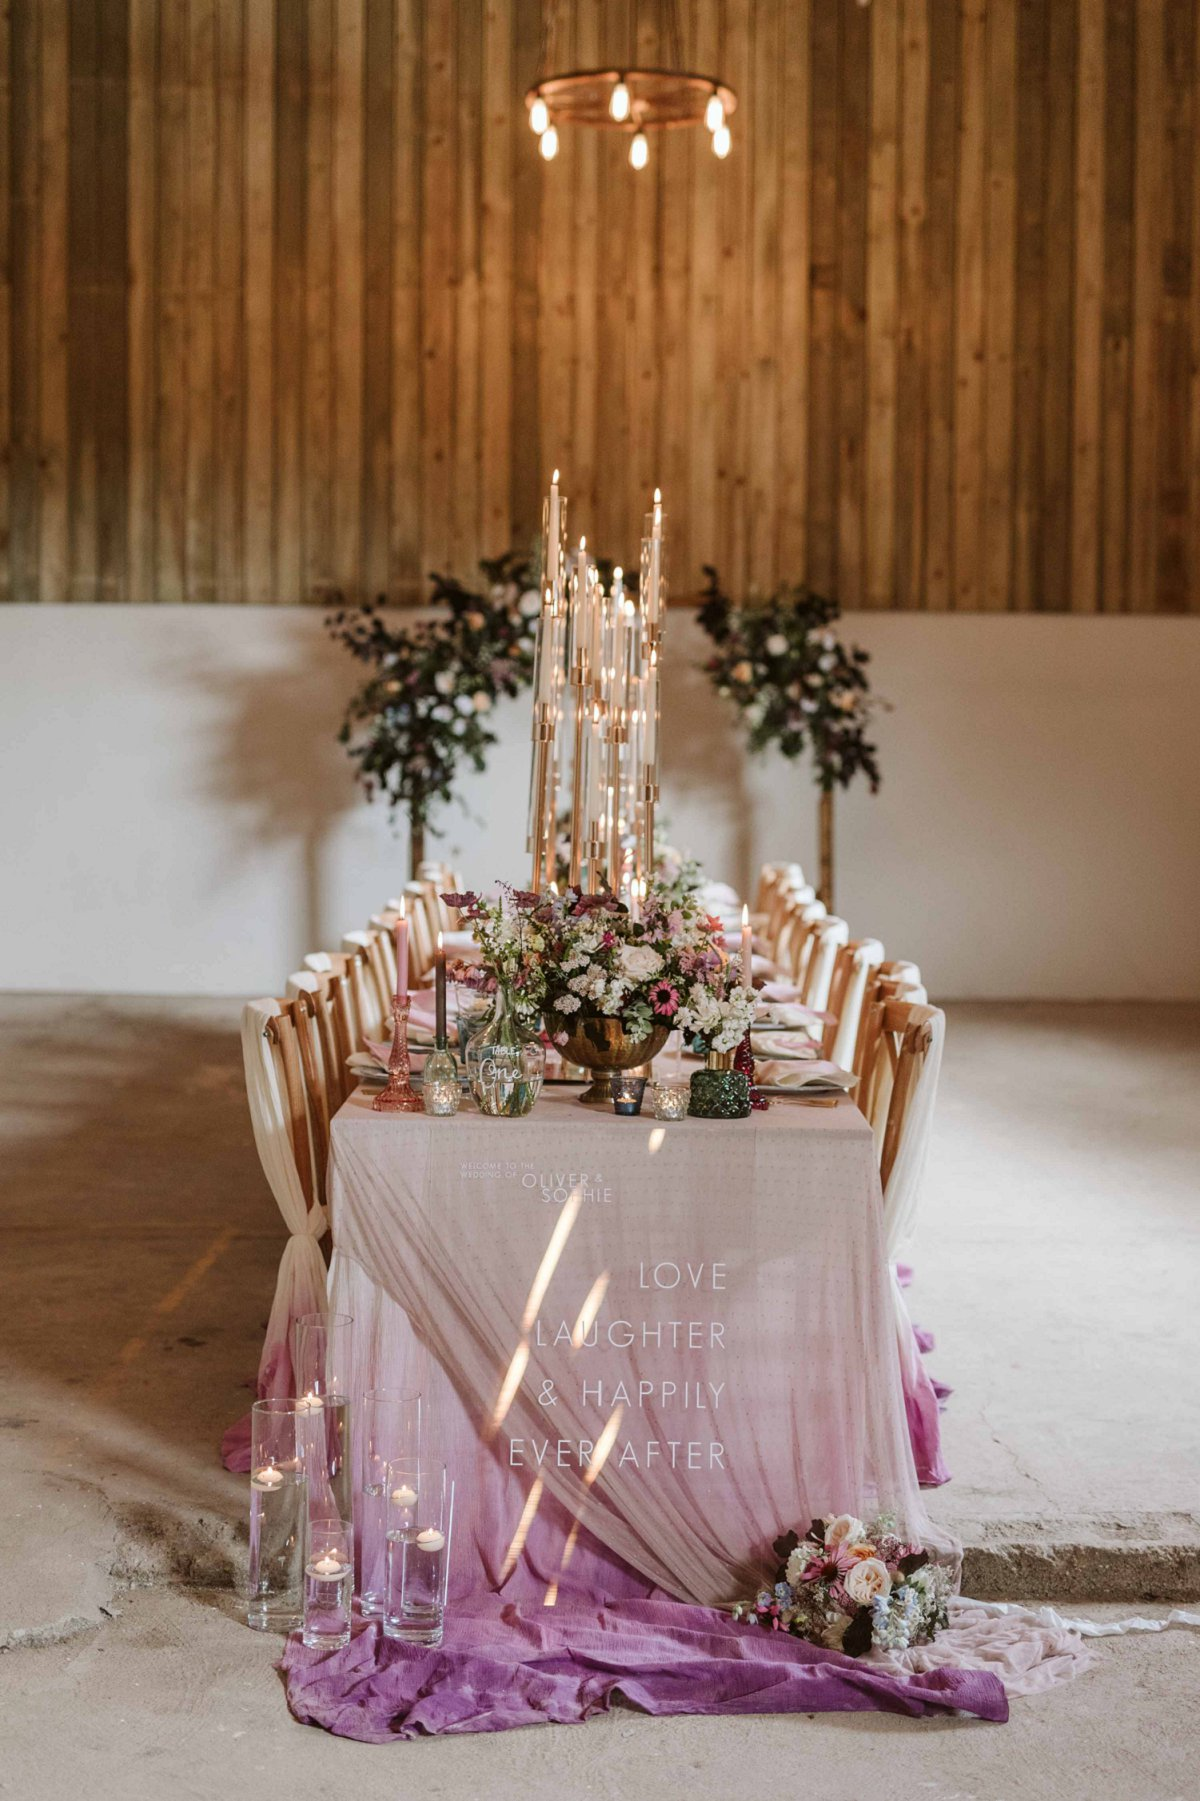 An Eclectic & Elegant Wedding Inspiration Shoot at Wold View Farm (c) Freya Raby Photography (33)